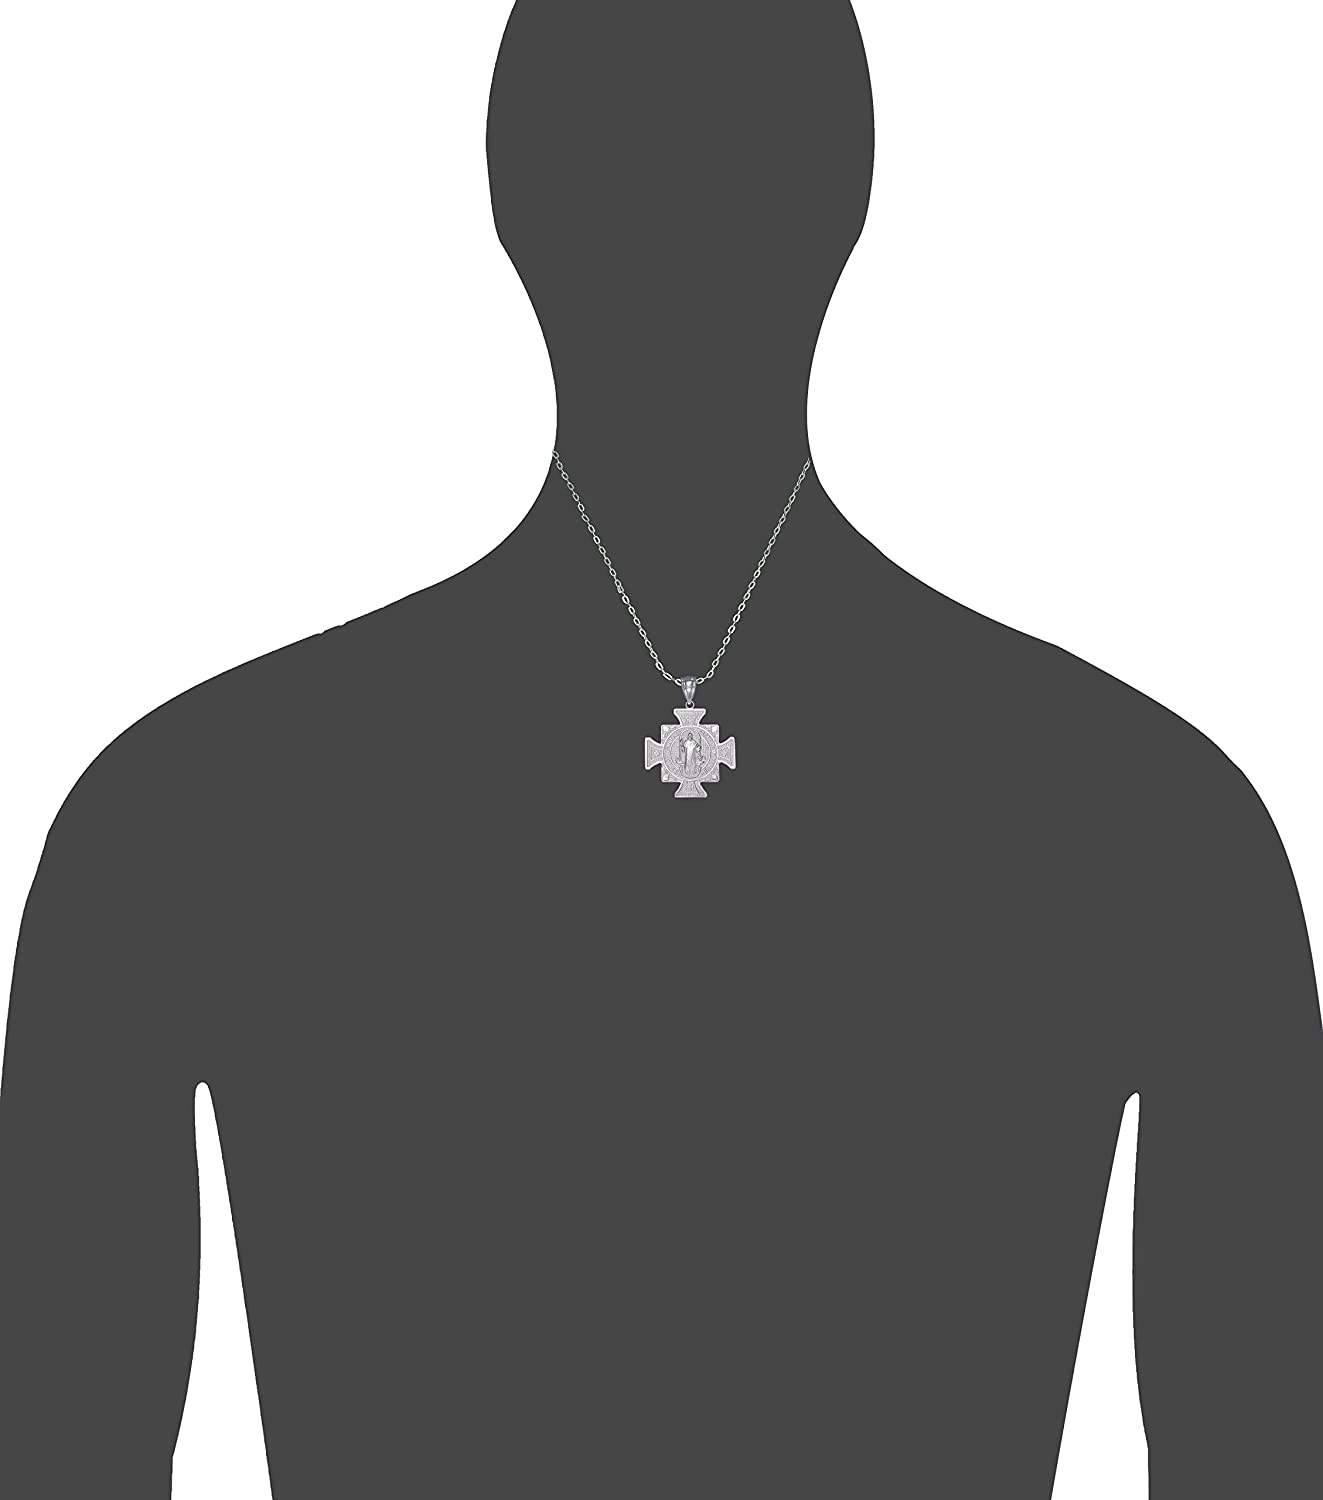 eJewelryPlus Sterling Silver Saint Benedict Cross Reversible Charm Pendant Necklace 1.3 Inches